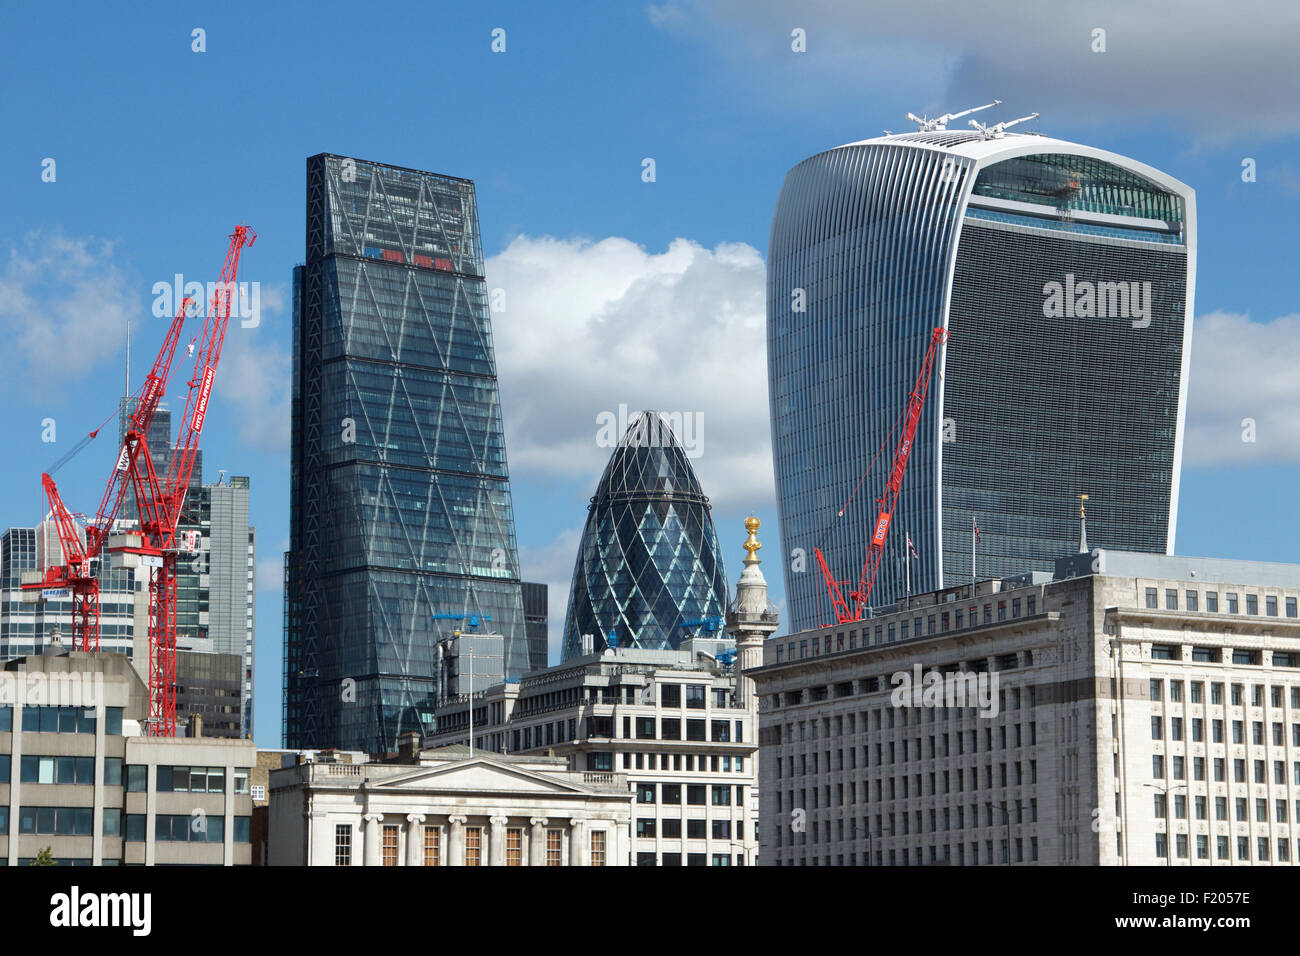 The City of London skyline including the 'Cheesegrater', the 'Gherkin' and the 'Walkie Talkie' - Stock Image